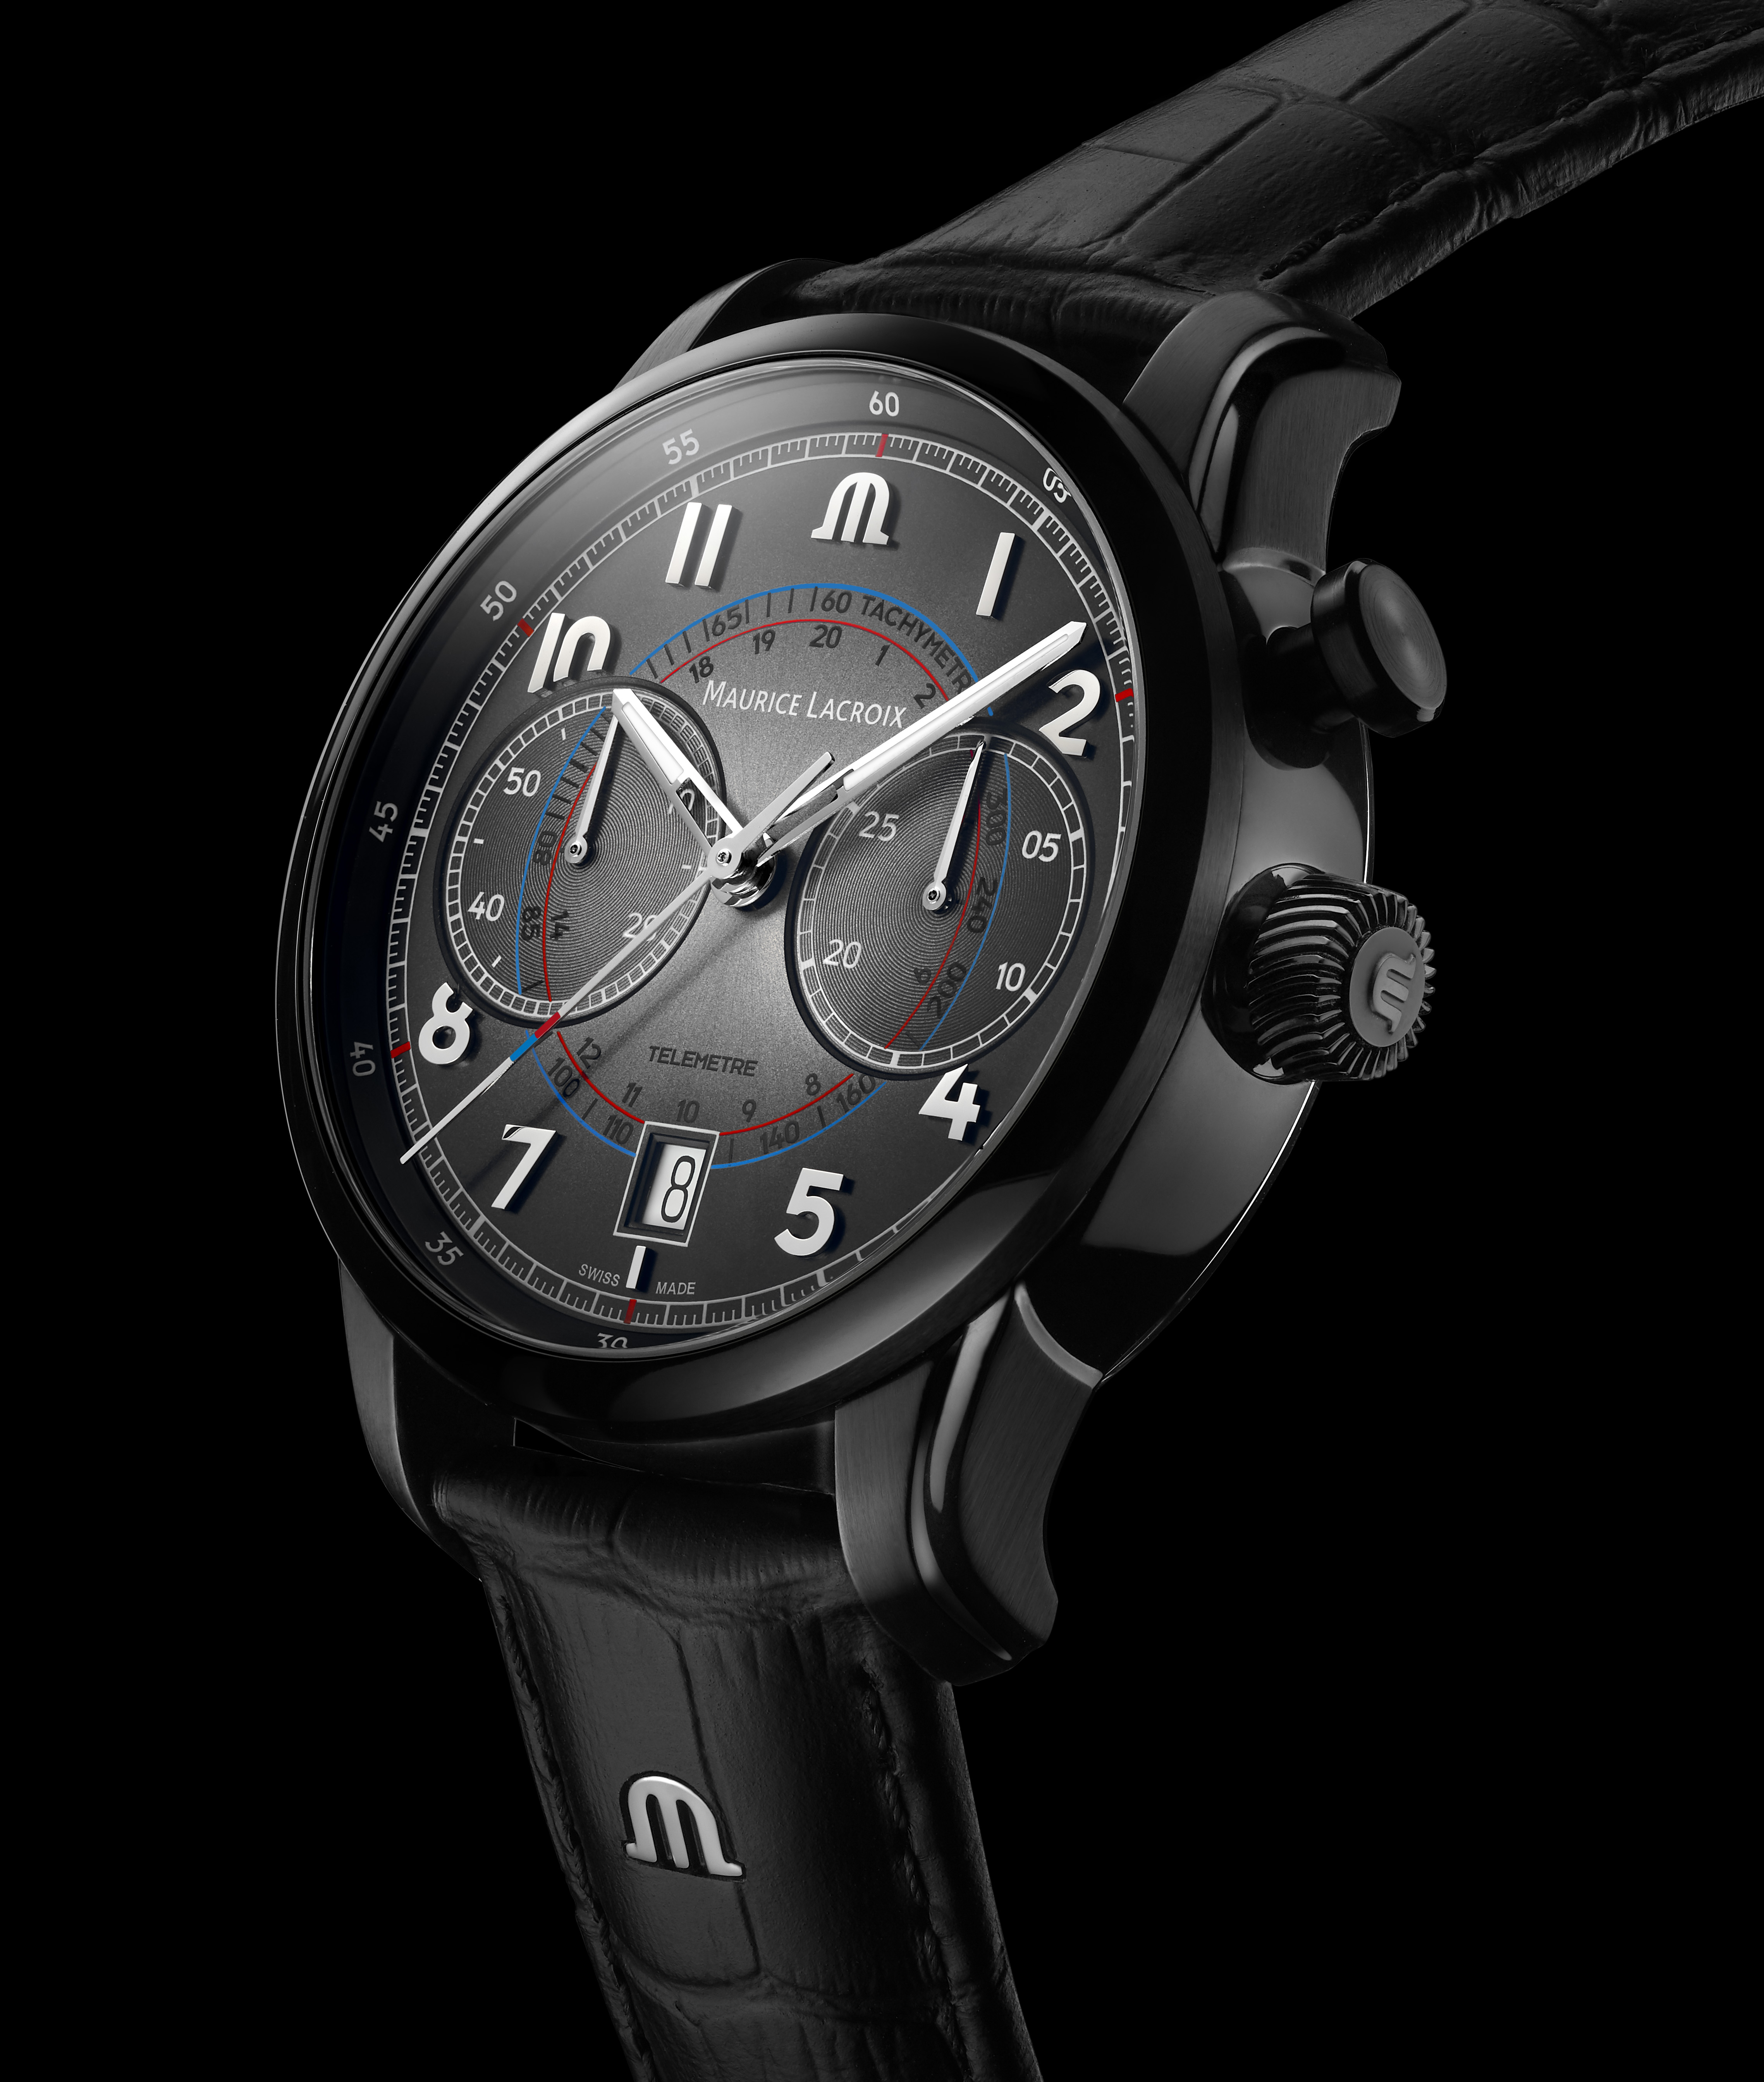 PONTOS 20 YEARS OF A MODERN CLASSIC